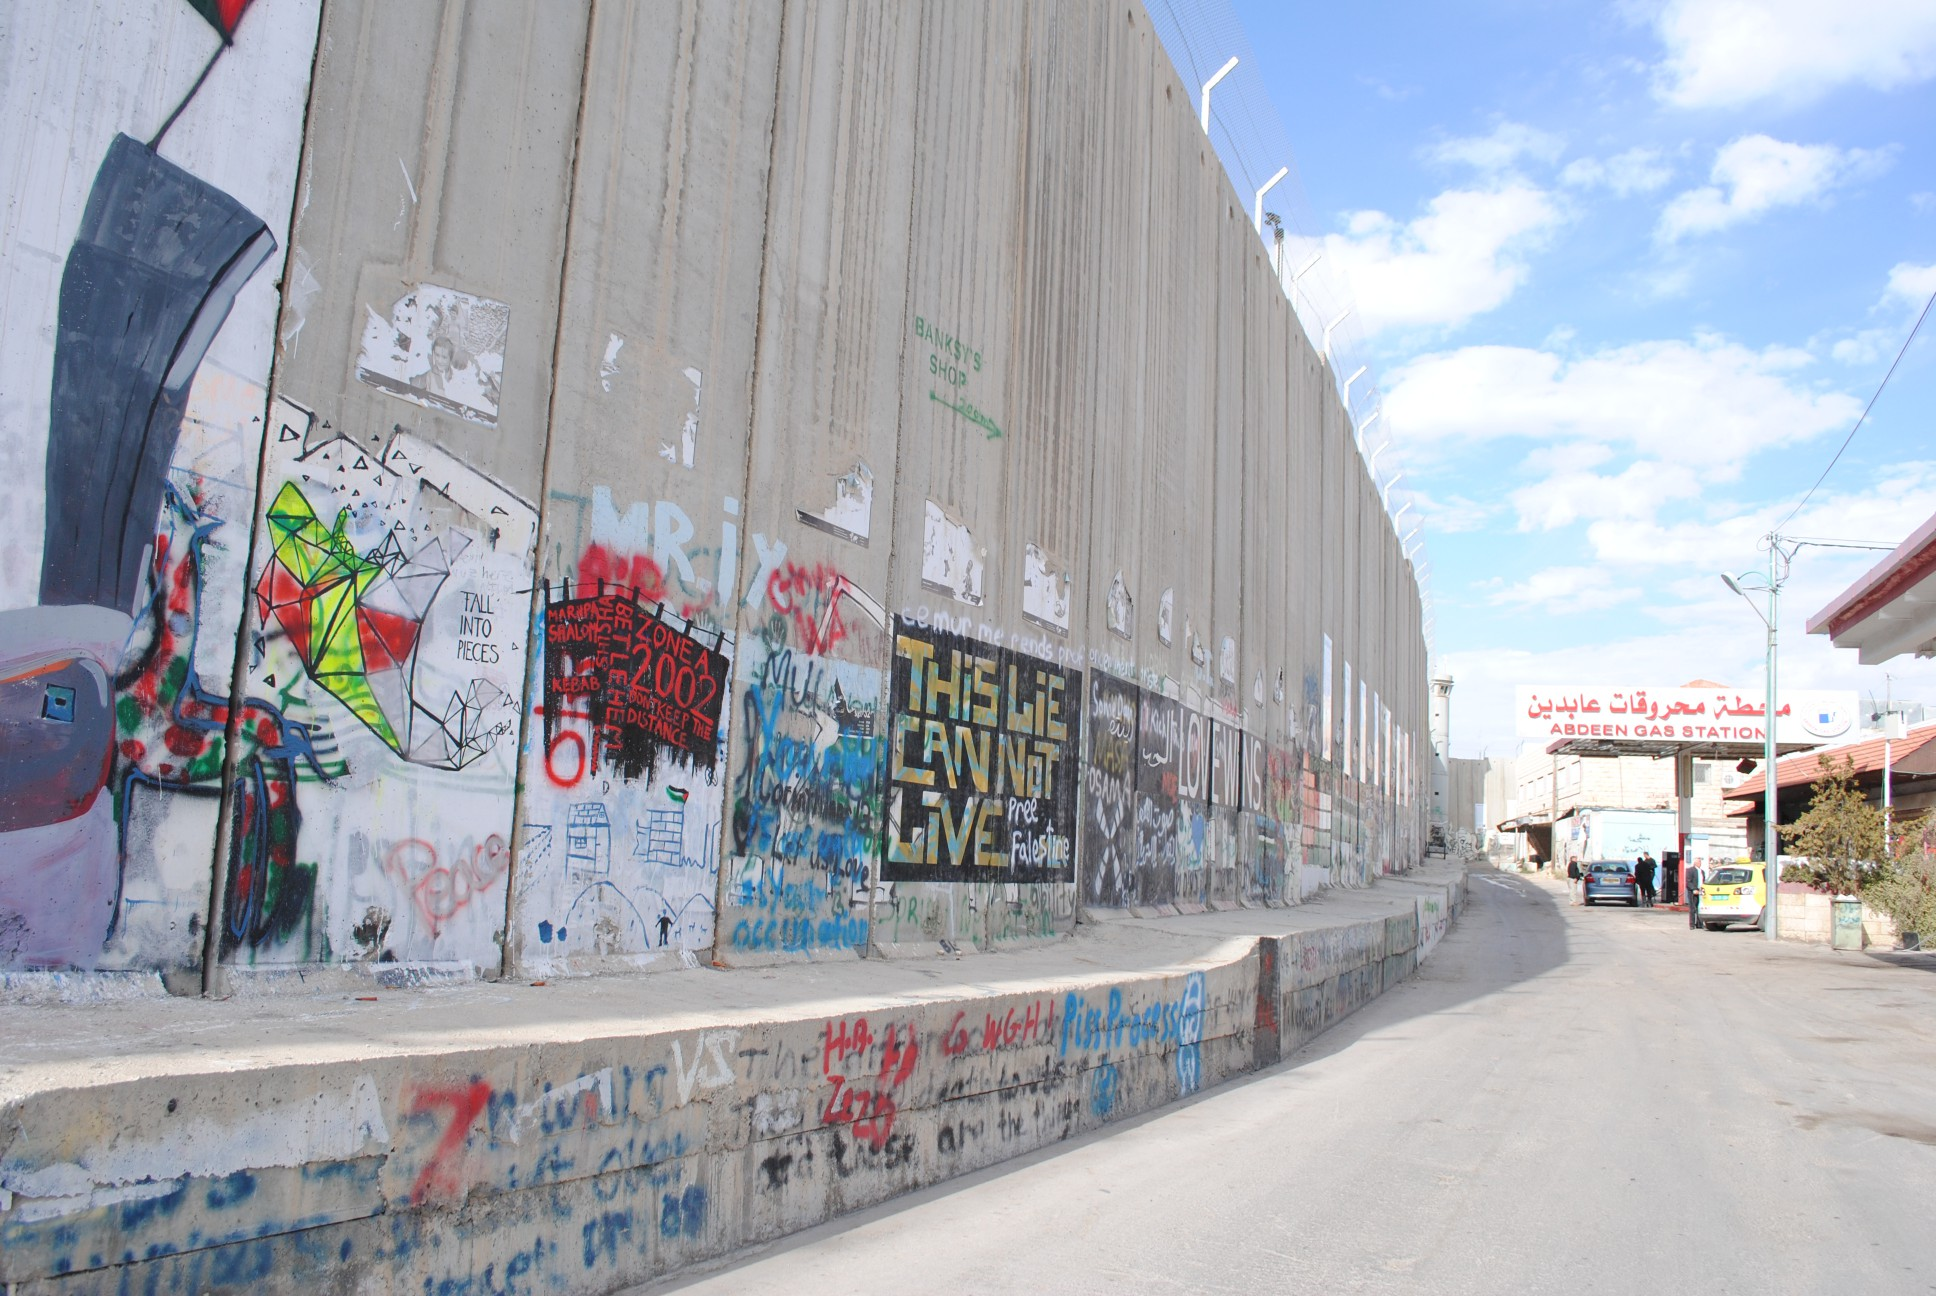 The Palestinian side of the wall in Bethlehem.